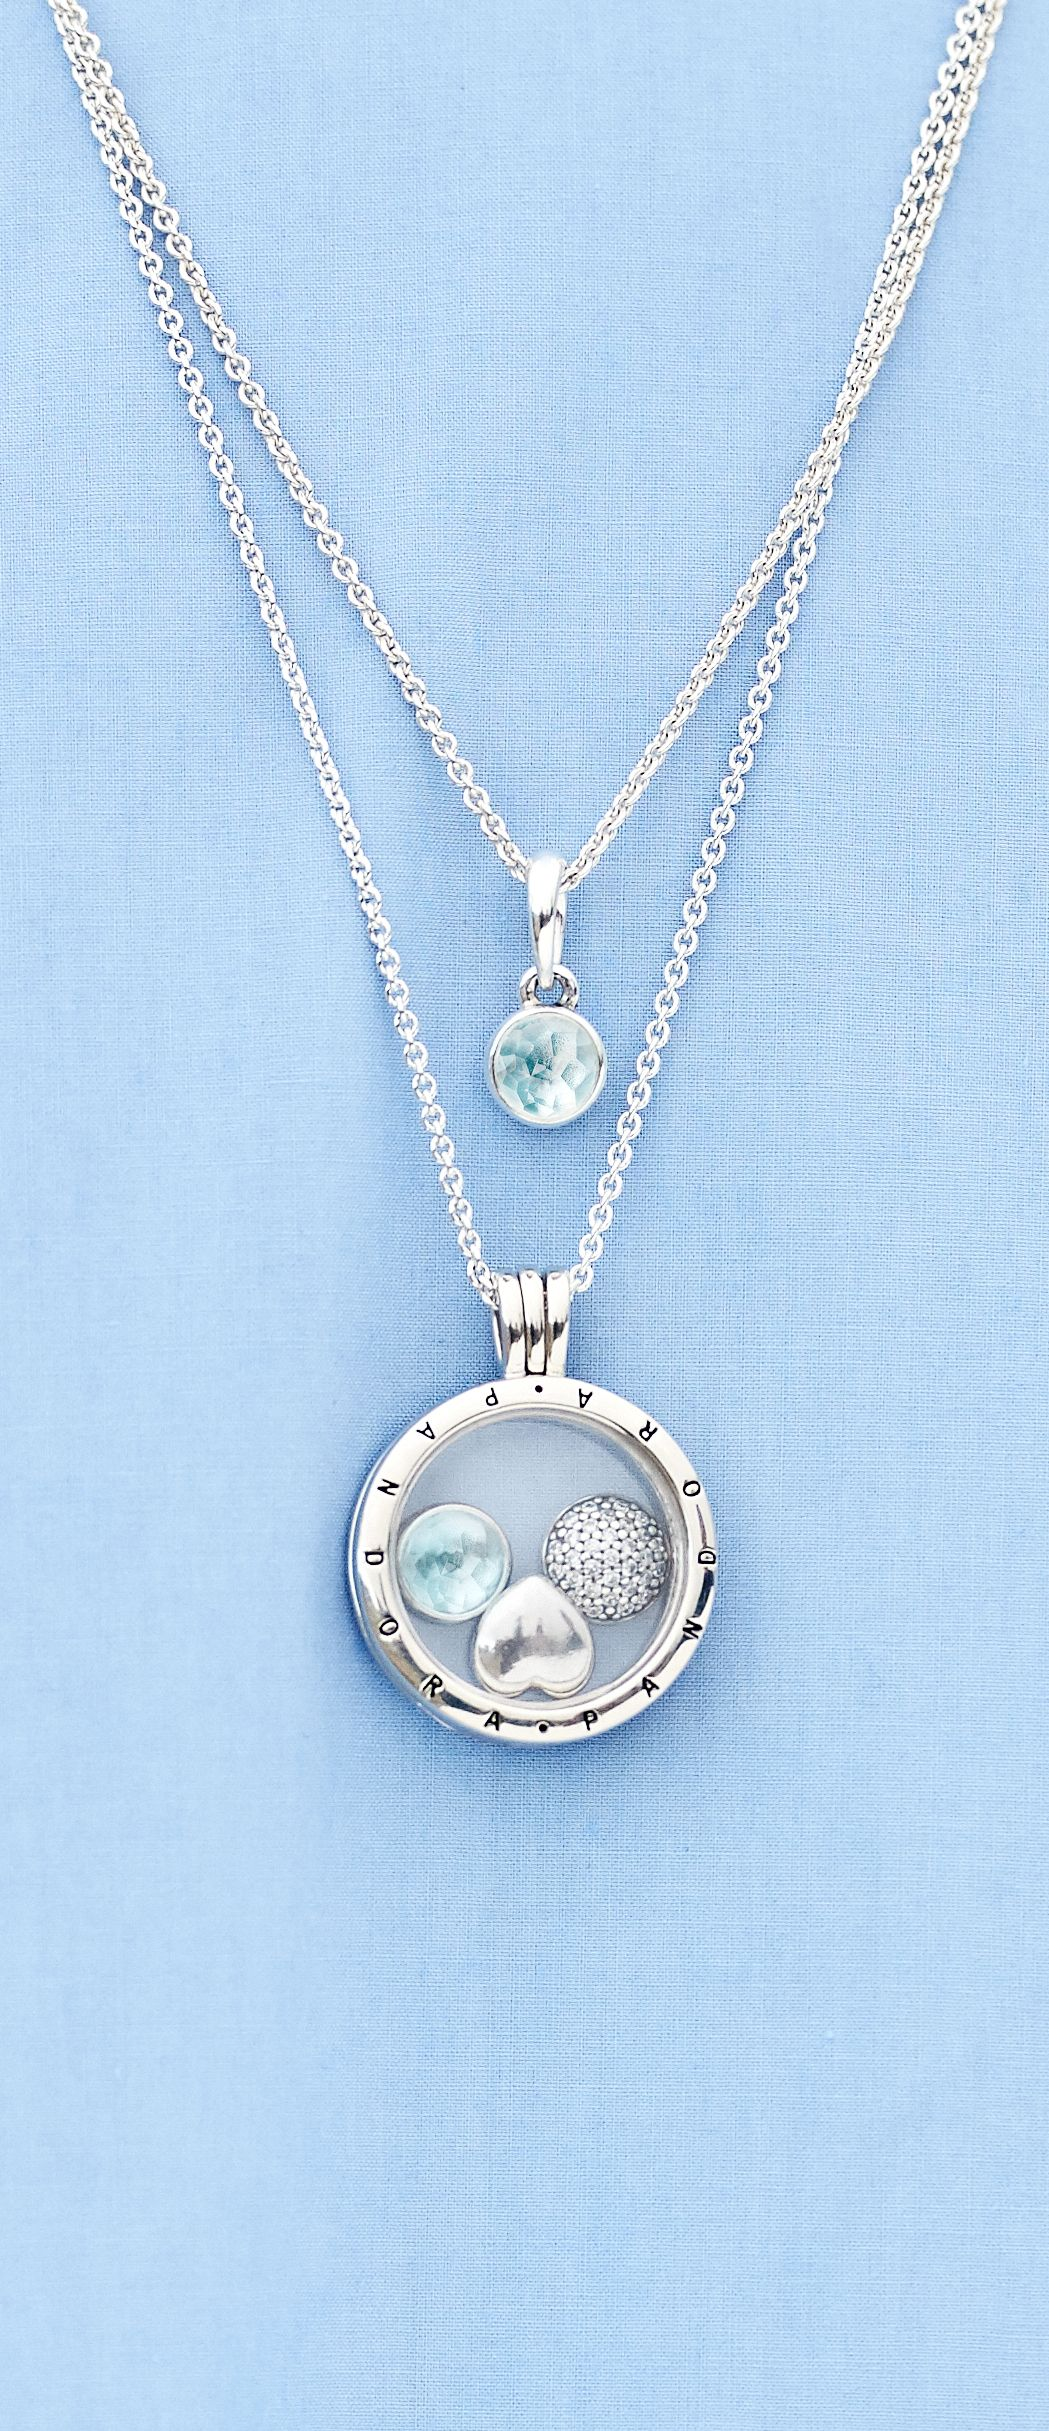 8a83f4467 Pandora Jewelry · Carry your birthstone in our PANDORA floating locket and  capture the look of the season.